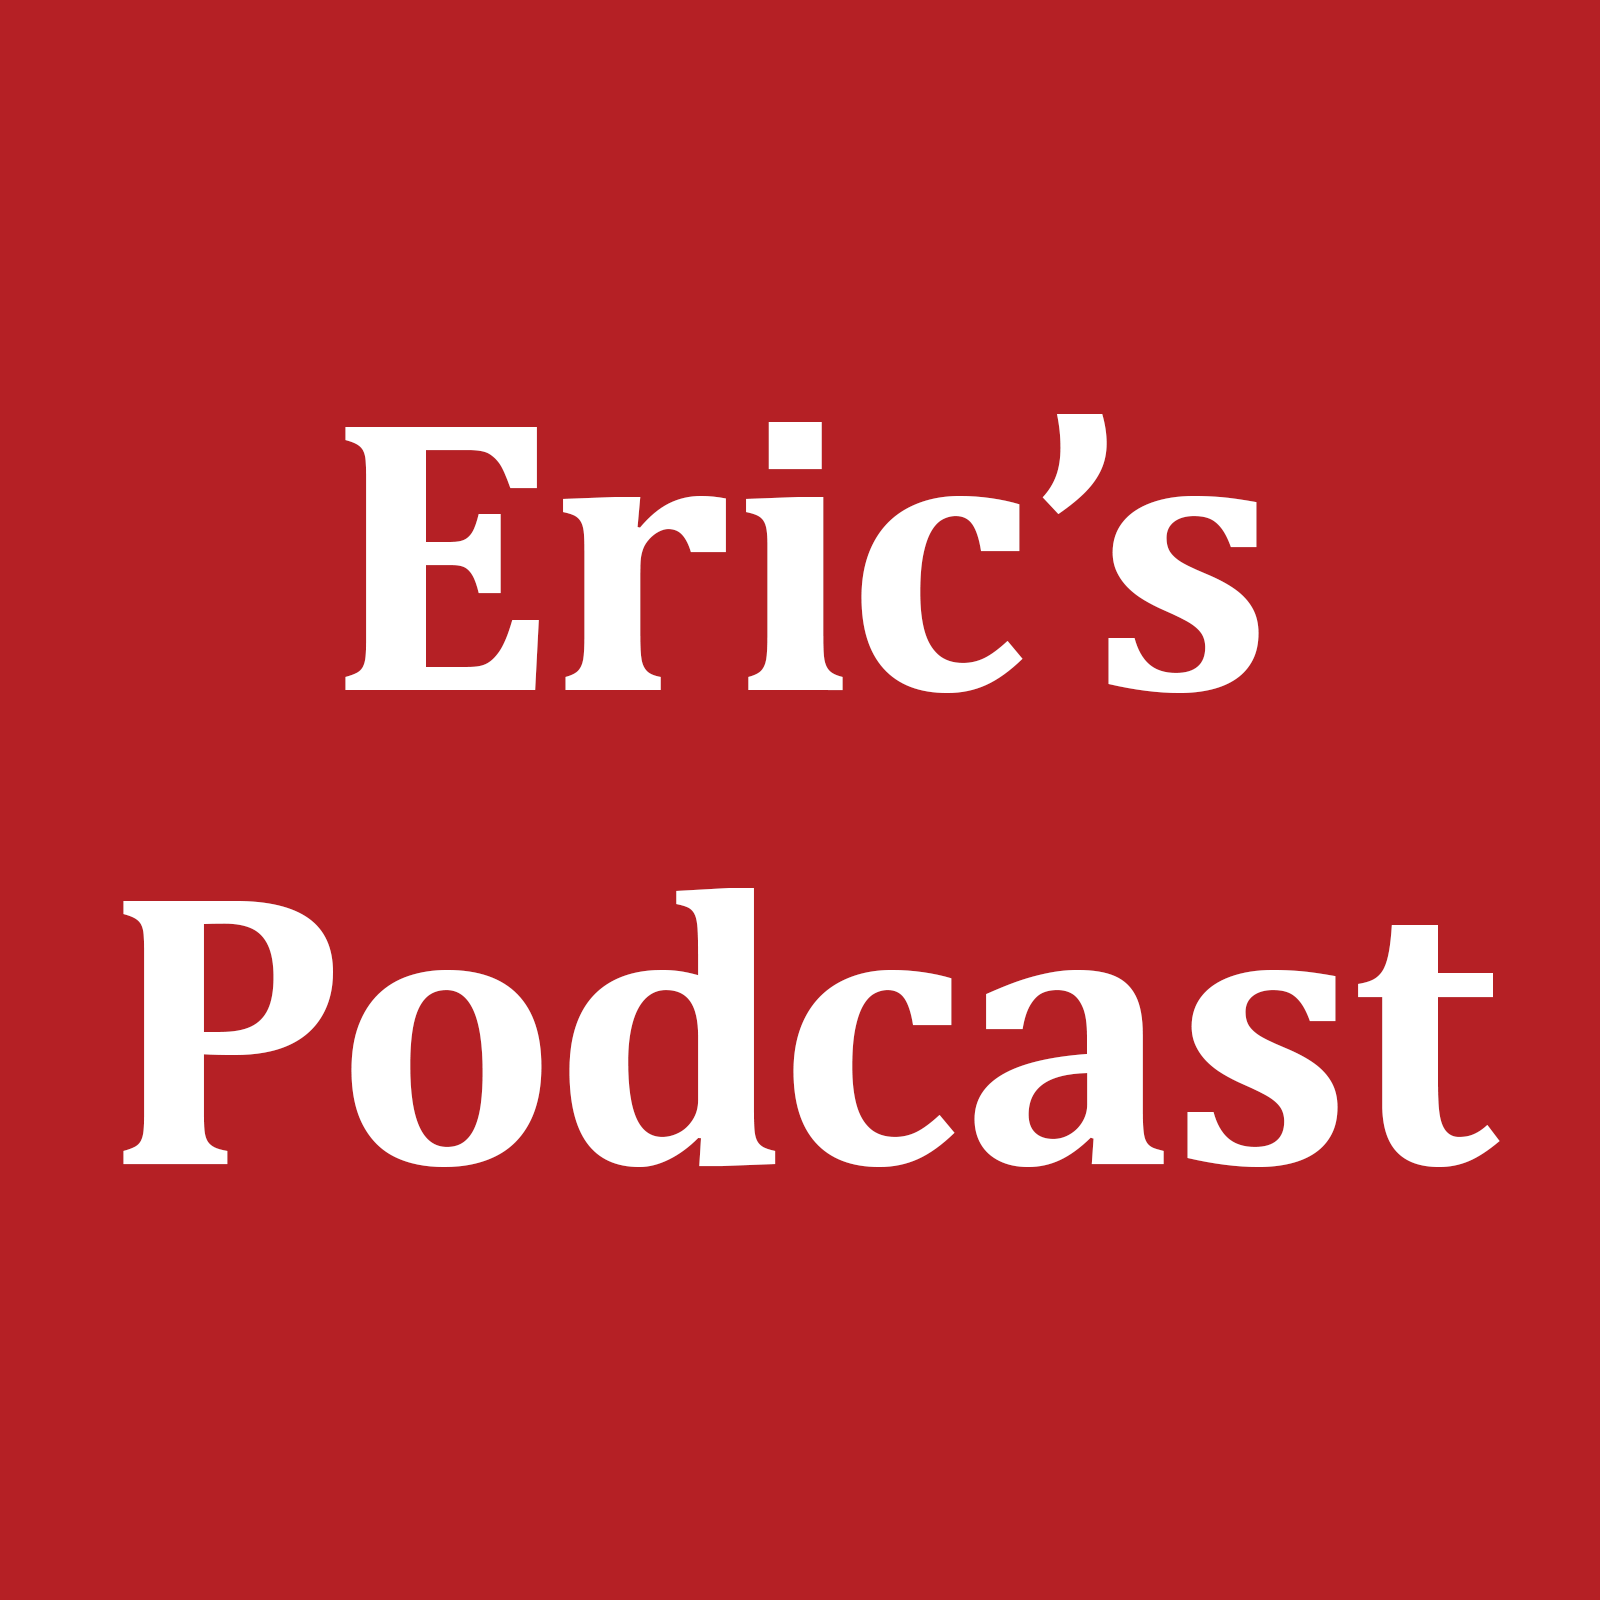 Eric's Podcast, episode 1